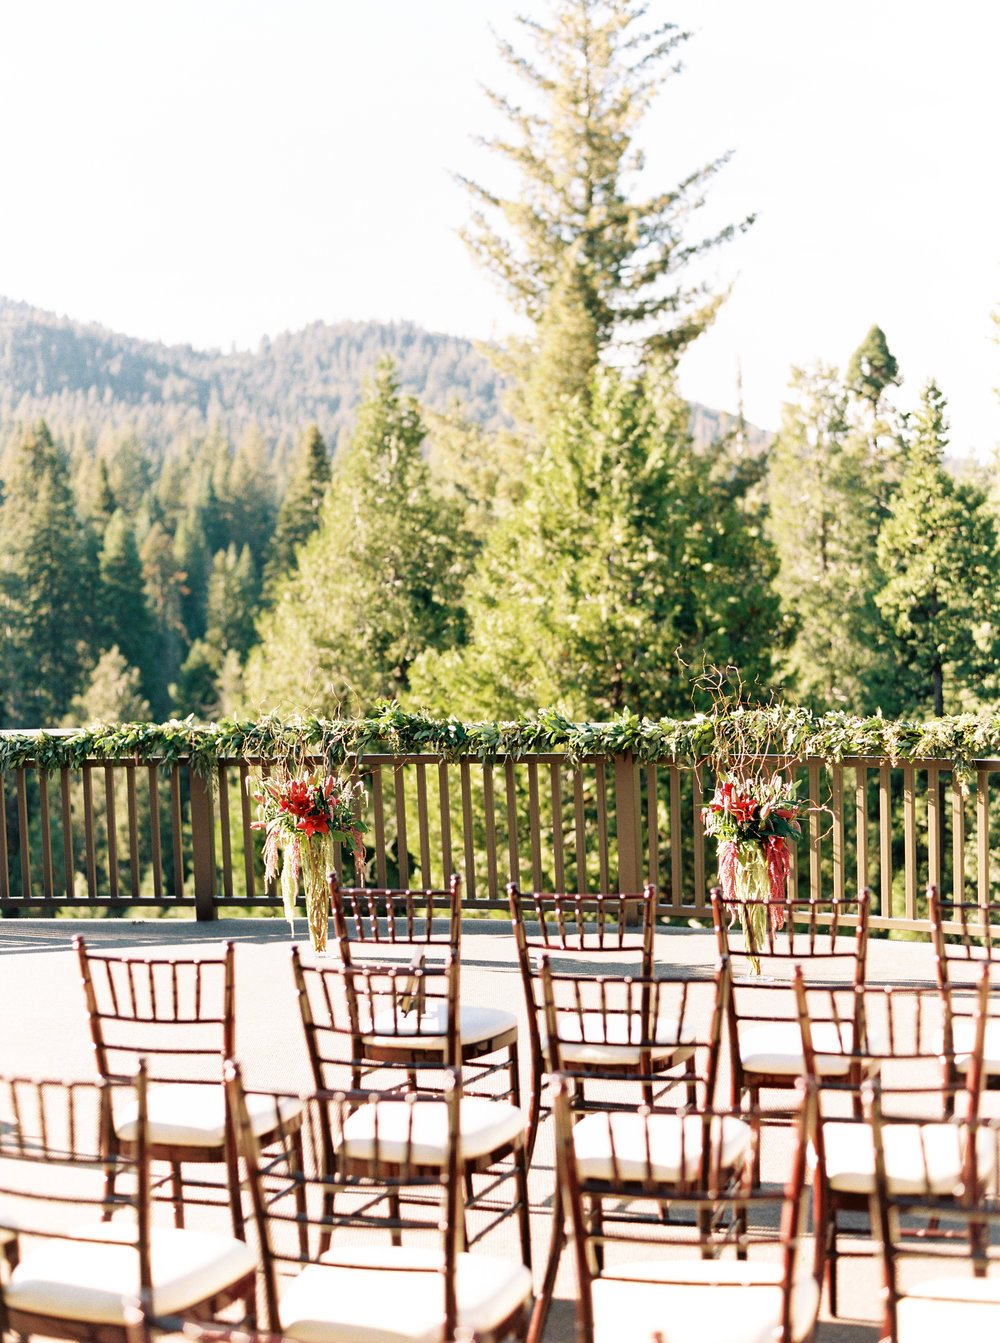 Tenaya-lodge-wedding-at-yosemite-national-park-california-98.jpg